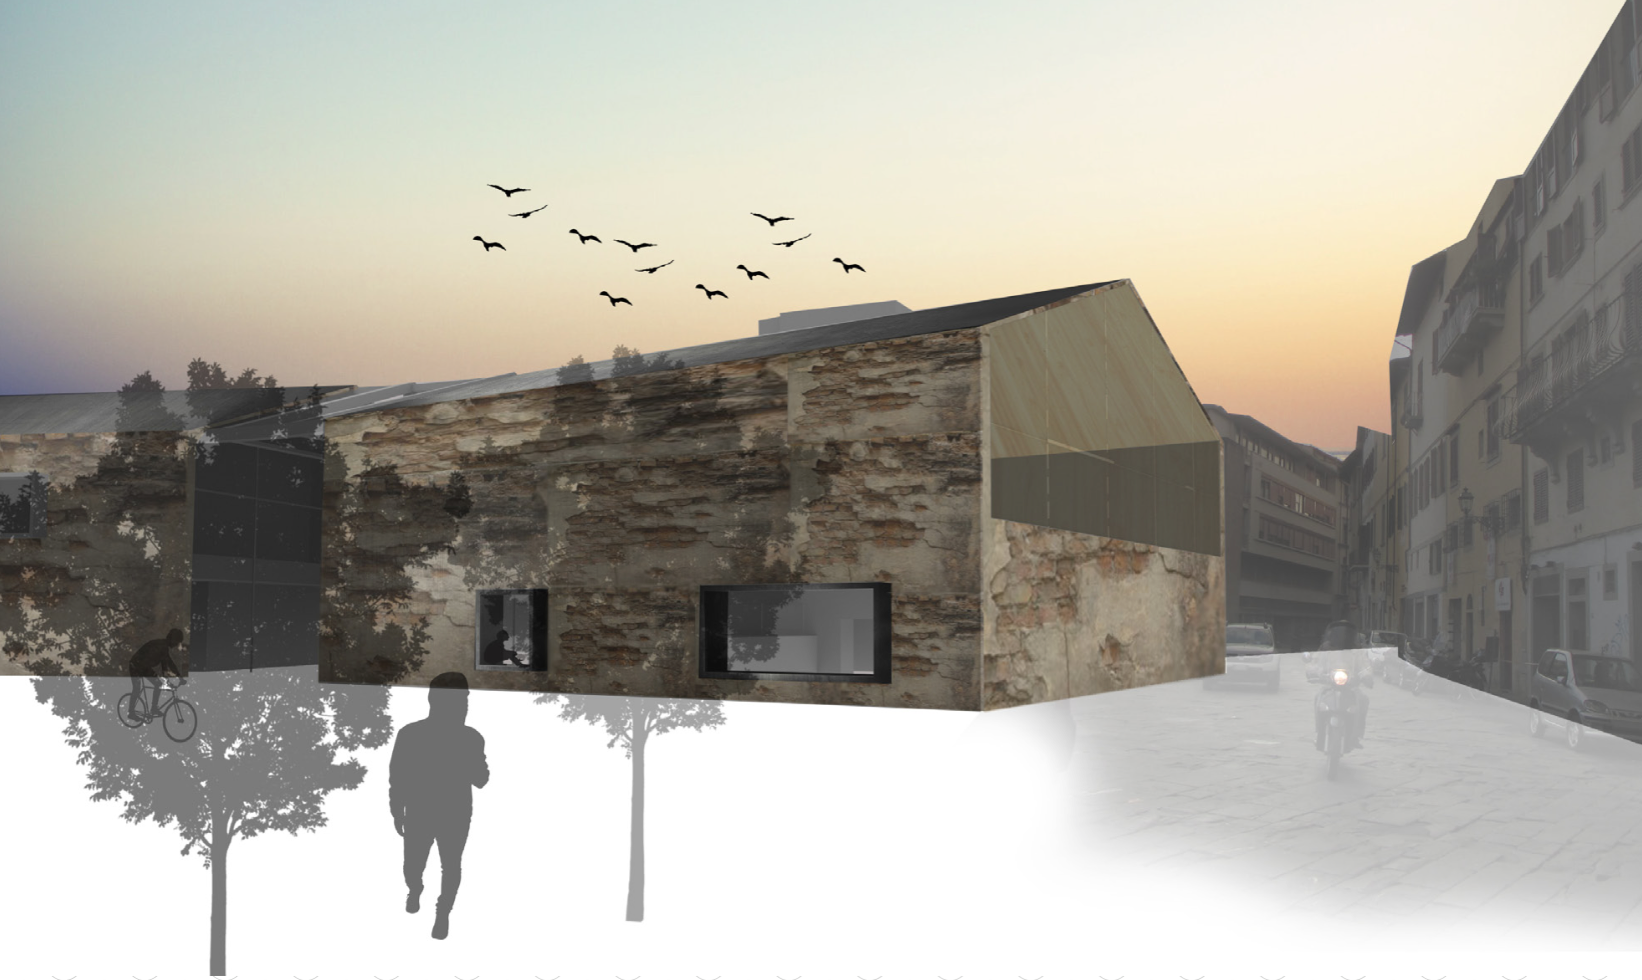 Spring 2015 Most Inspiring Students' Projects competition. Student: Cayla Walter (Architecture).